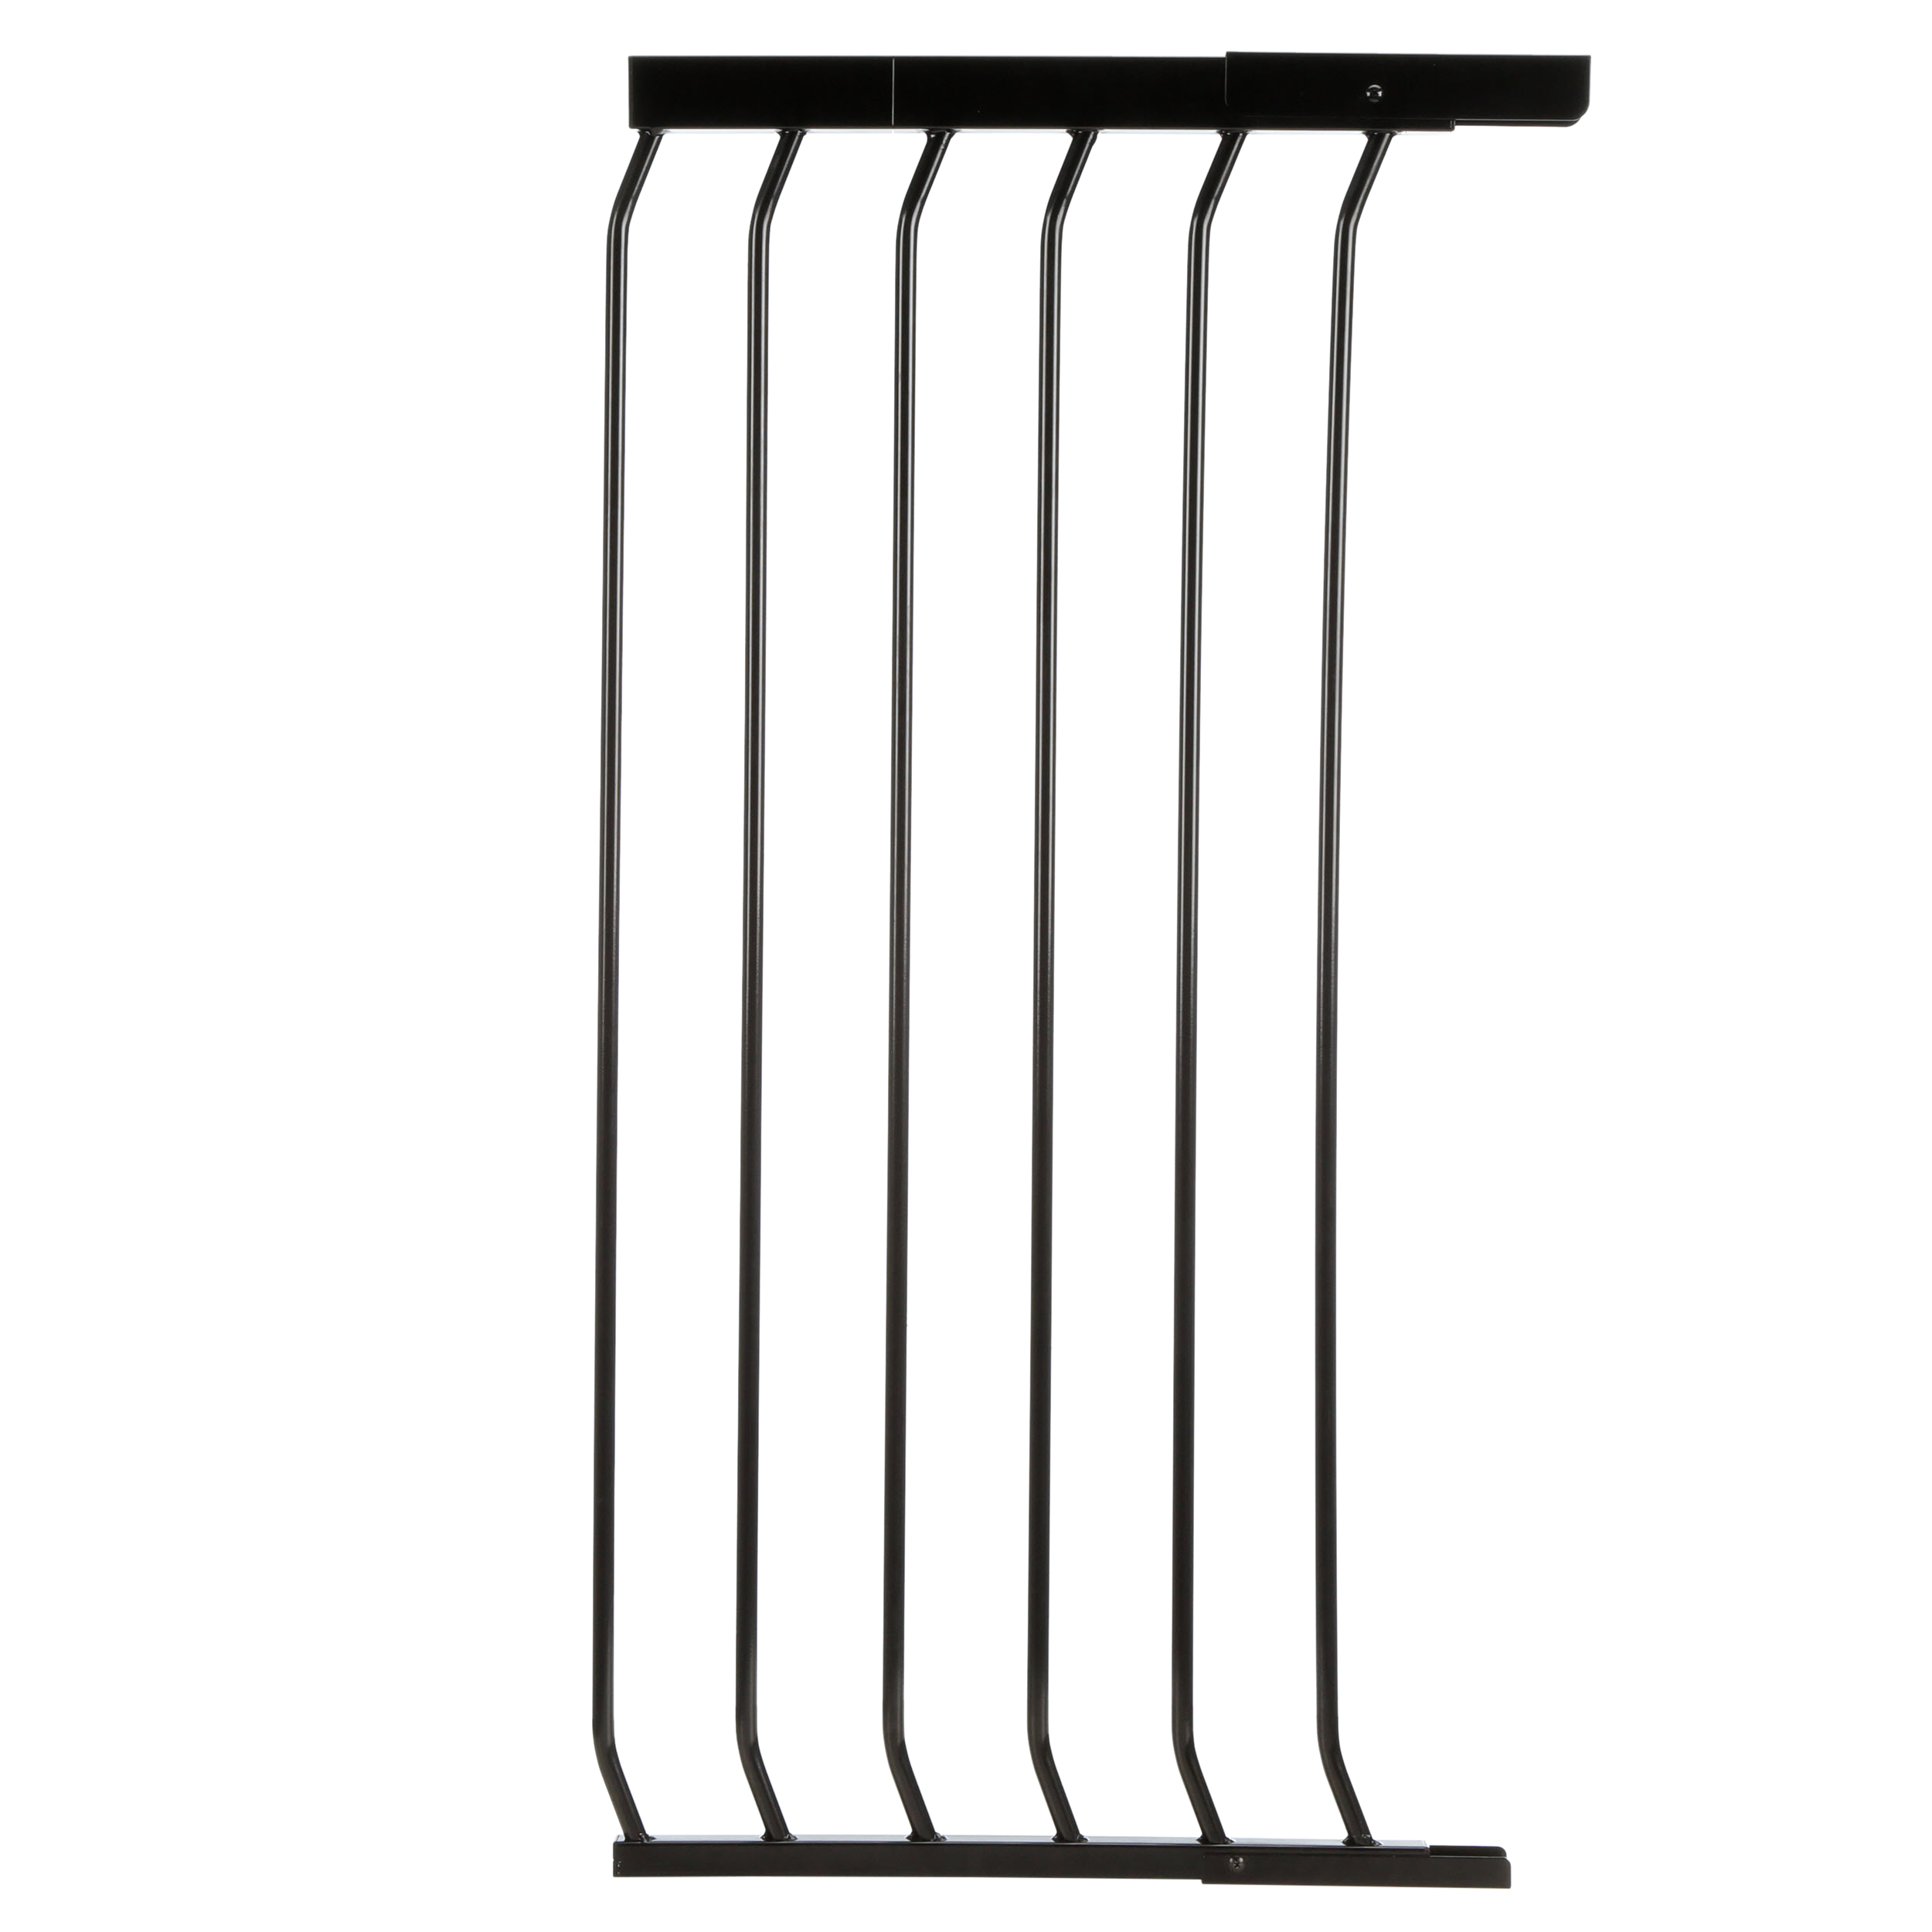 Dreambaby Chelsea 17.5 inch Extra Tall Baby Gate Extension